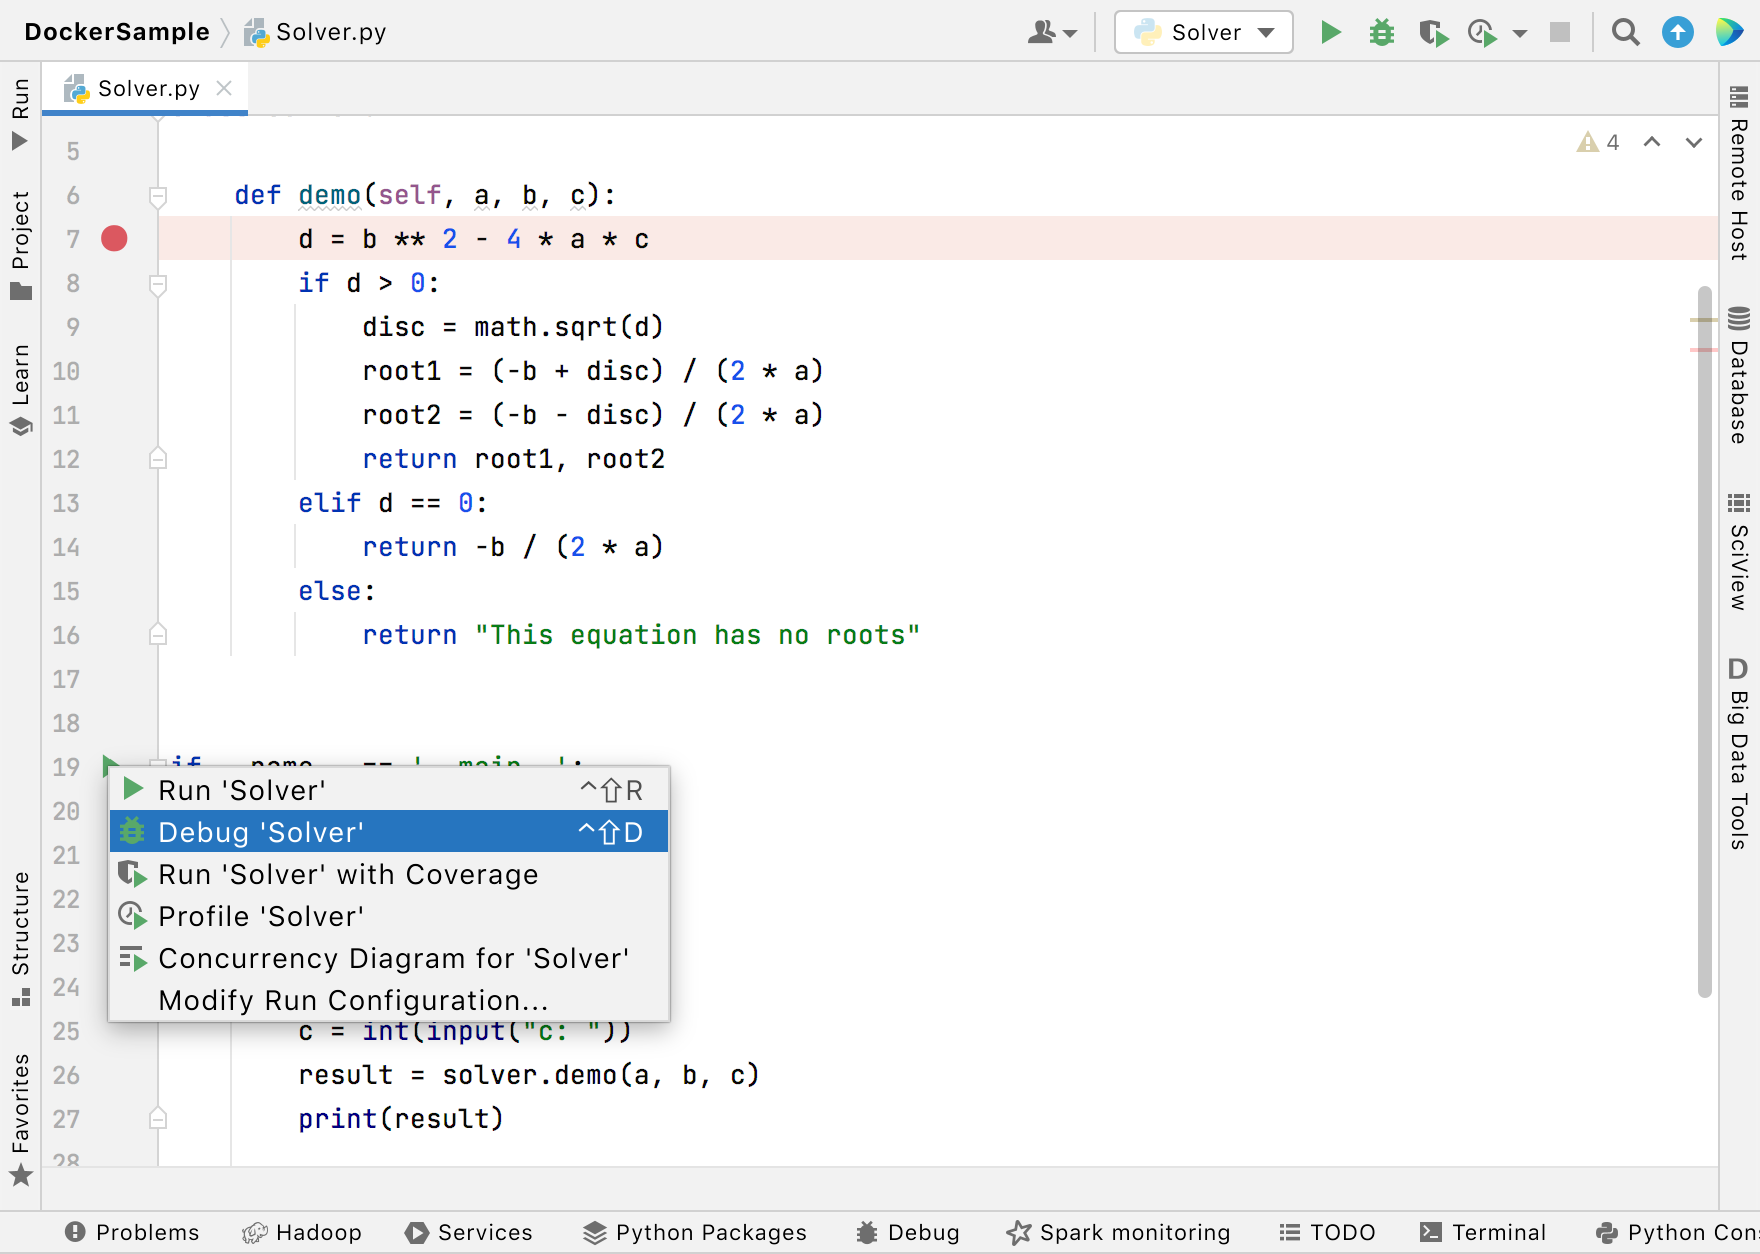 Setting a breakpoint and launching the debugger